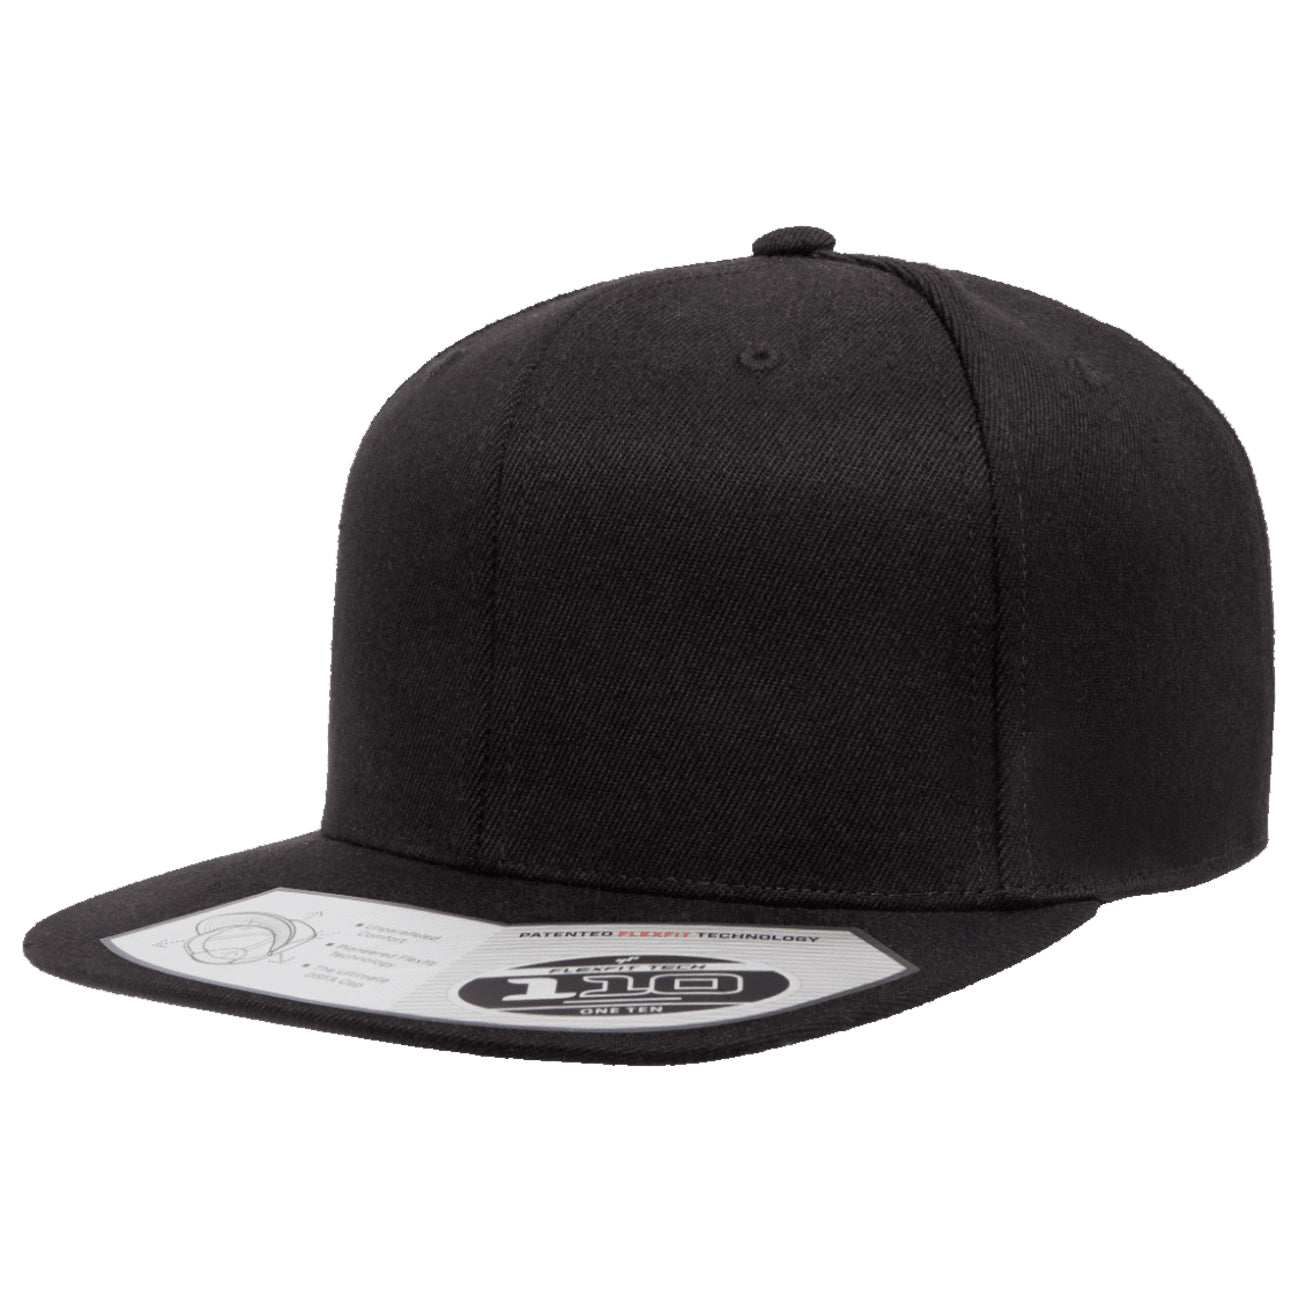 Flexfit 110 Premium Solid Adjustable Snapback